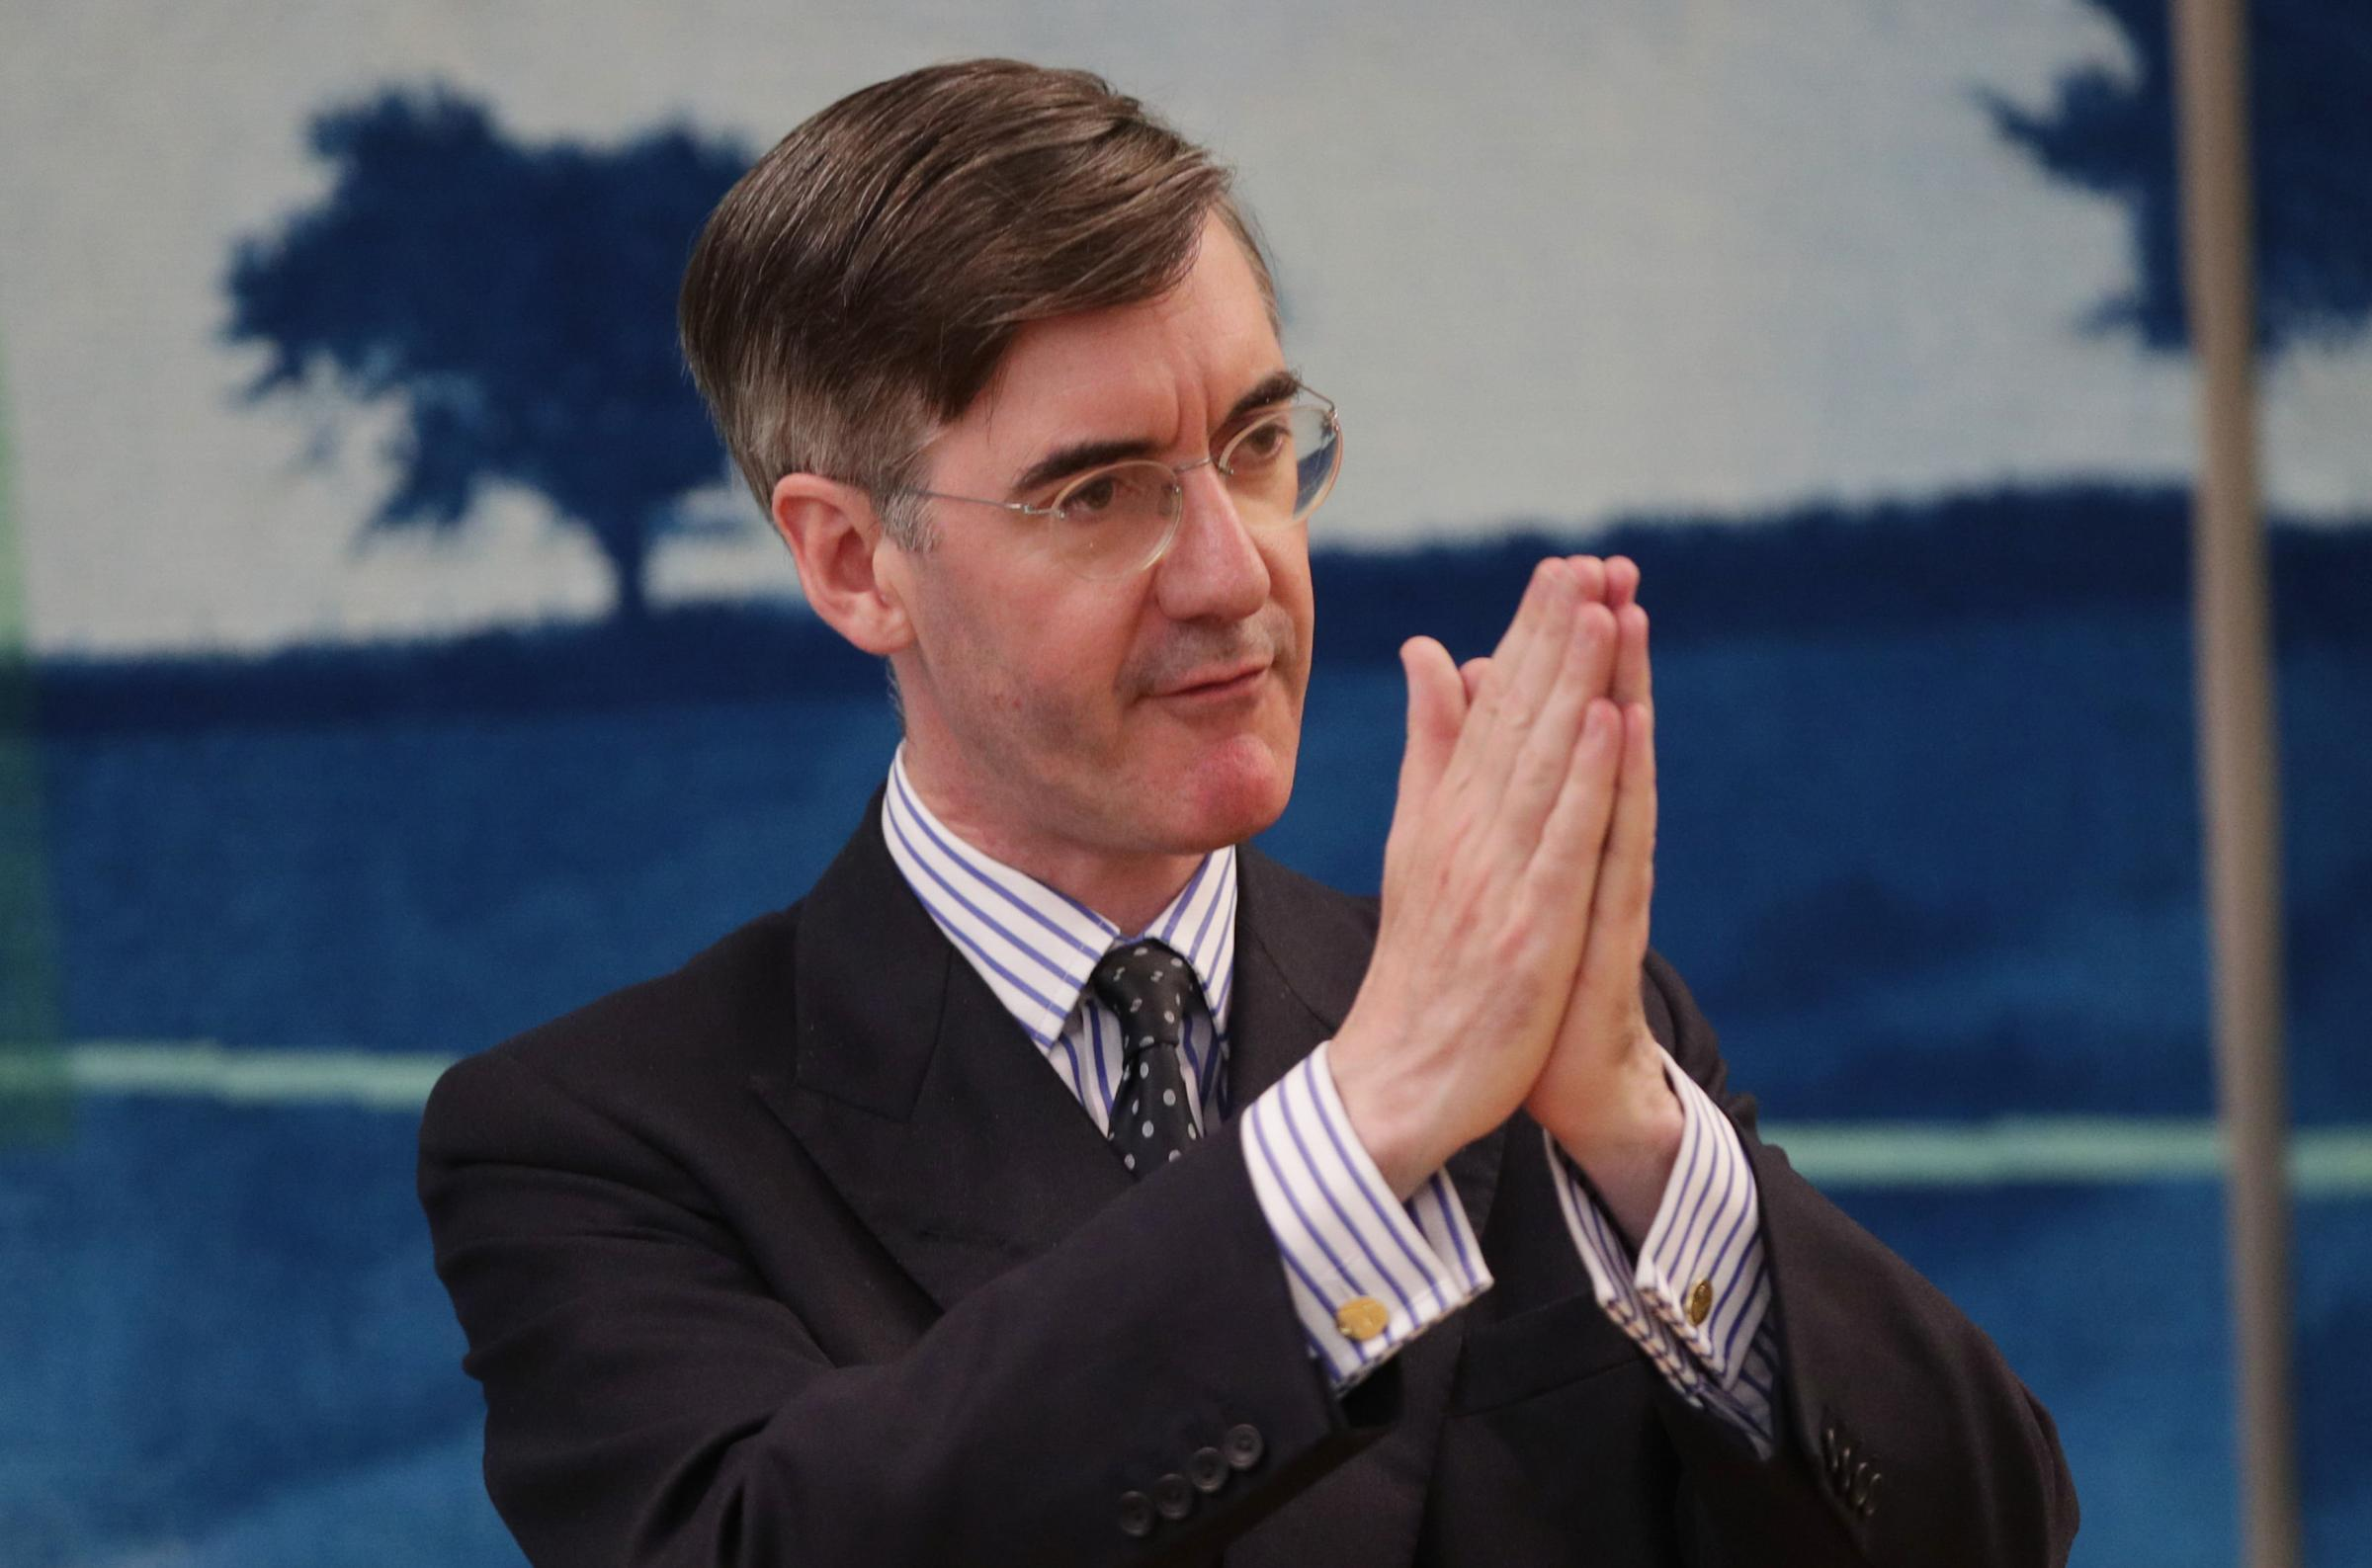 Jacob Rees-Mogg openly declared his leadership of the European Research Group